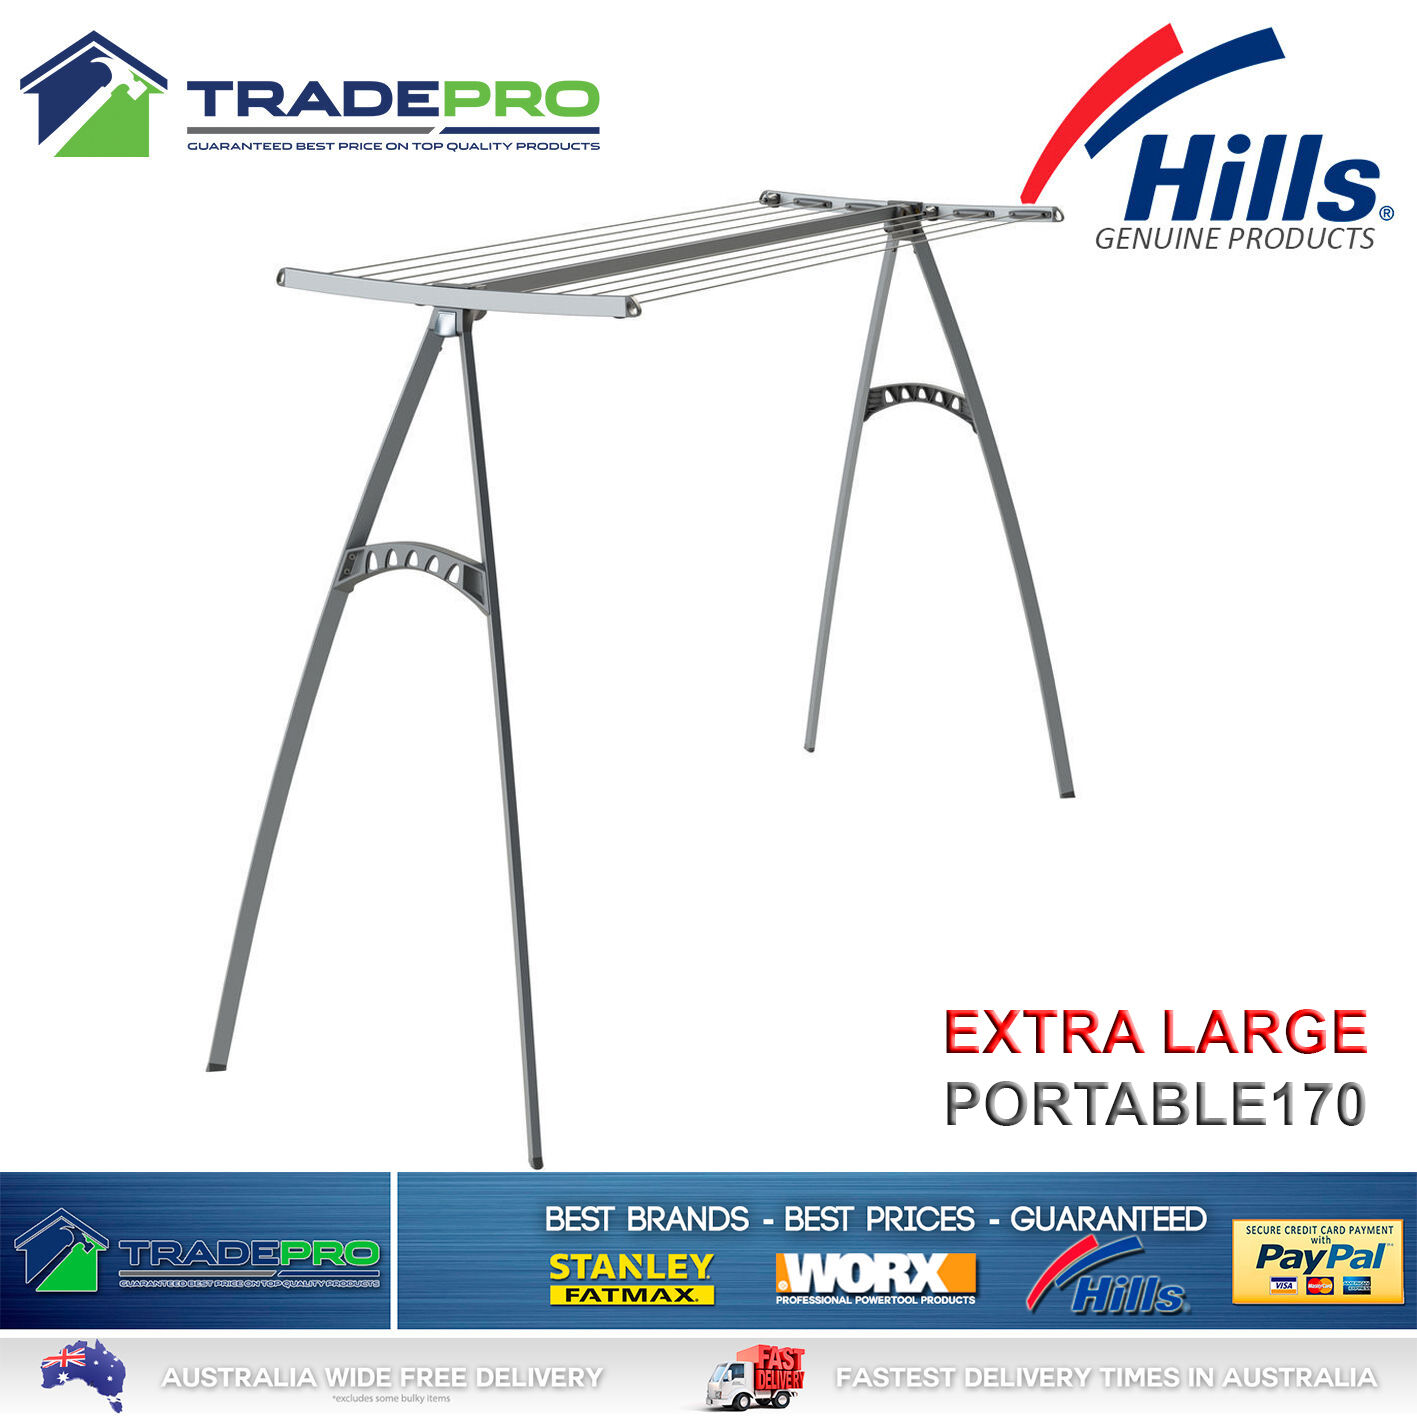 Details About Hills Clothesline Portable 170 New Model 17m Pro Clothes Line Airer Drying Rack